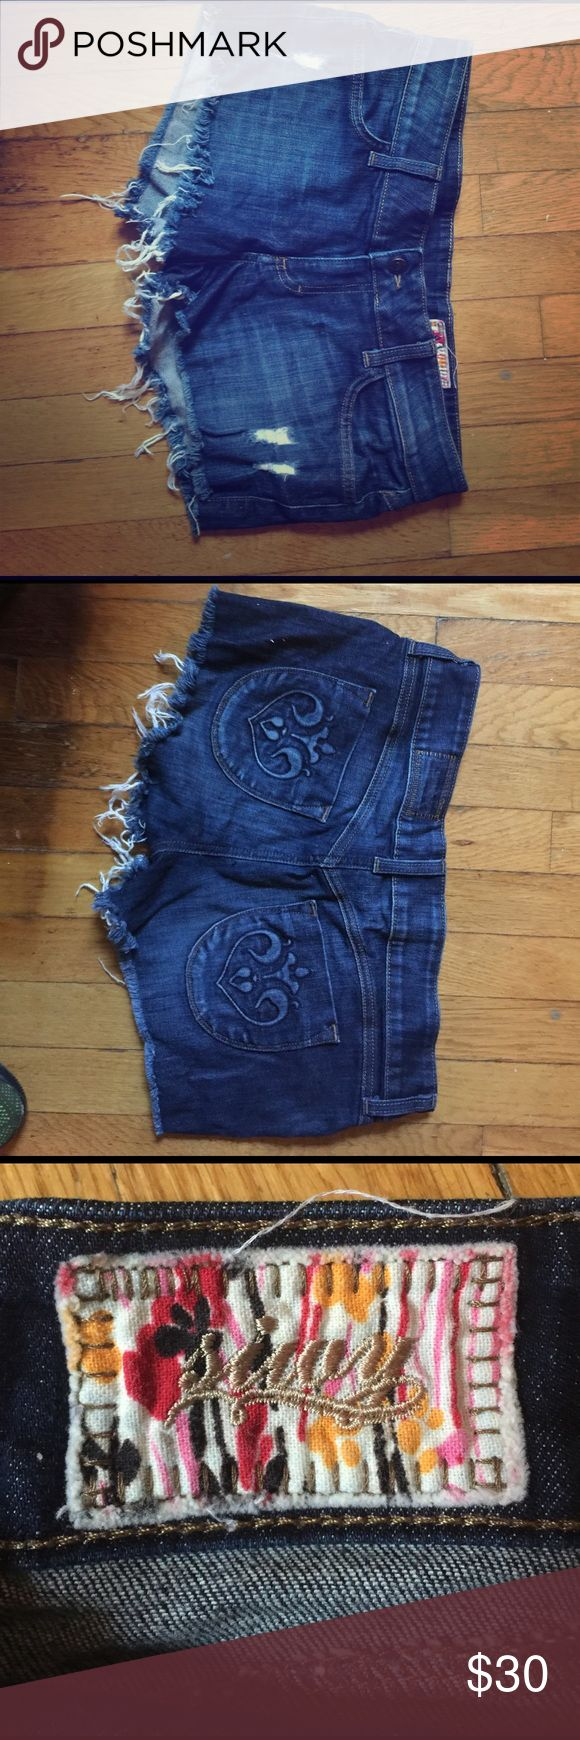 Siwy cutoff denim shorts Super cute and comfortable cutoff jean shorts. Back pockets have a cool design. It has enough stretch that it moves with you and doesn't dig into you anywhere. Love these shorts! Siwy Shorts Jean Shorts